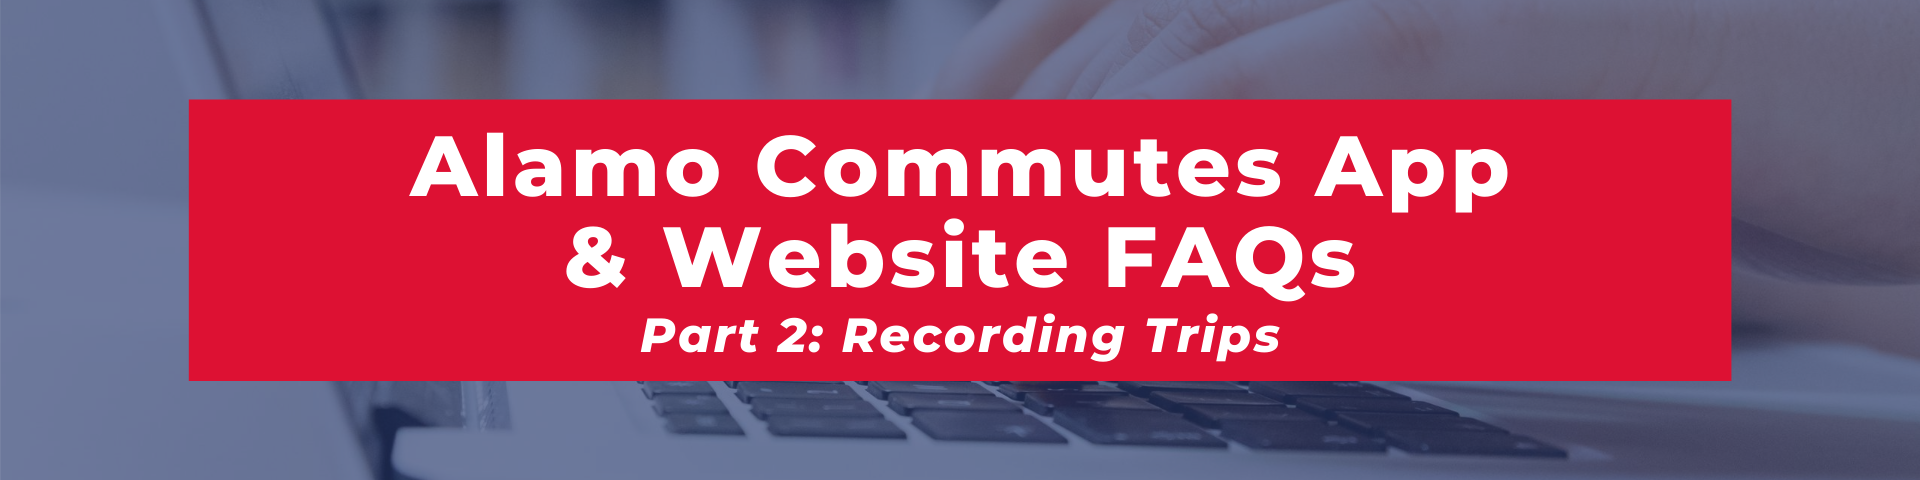 blog title banner image:  Alamo Commutes App and Website frequently asked questions; Part 2: Recording Trips